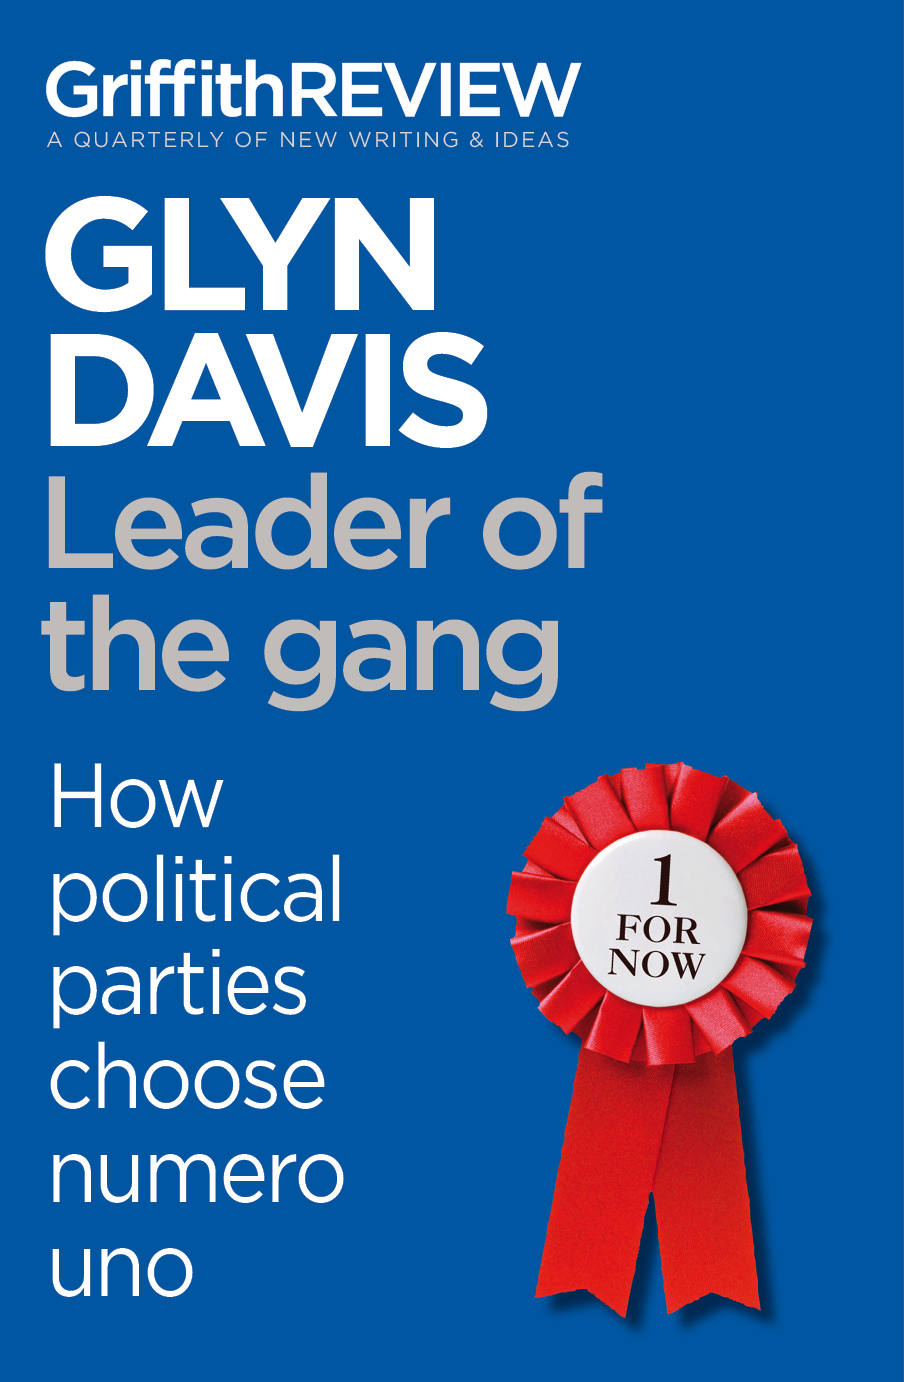 Griffith REVIEW Single: Leader of the gang By: Glyn Davis